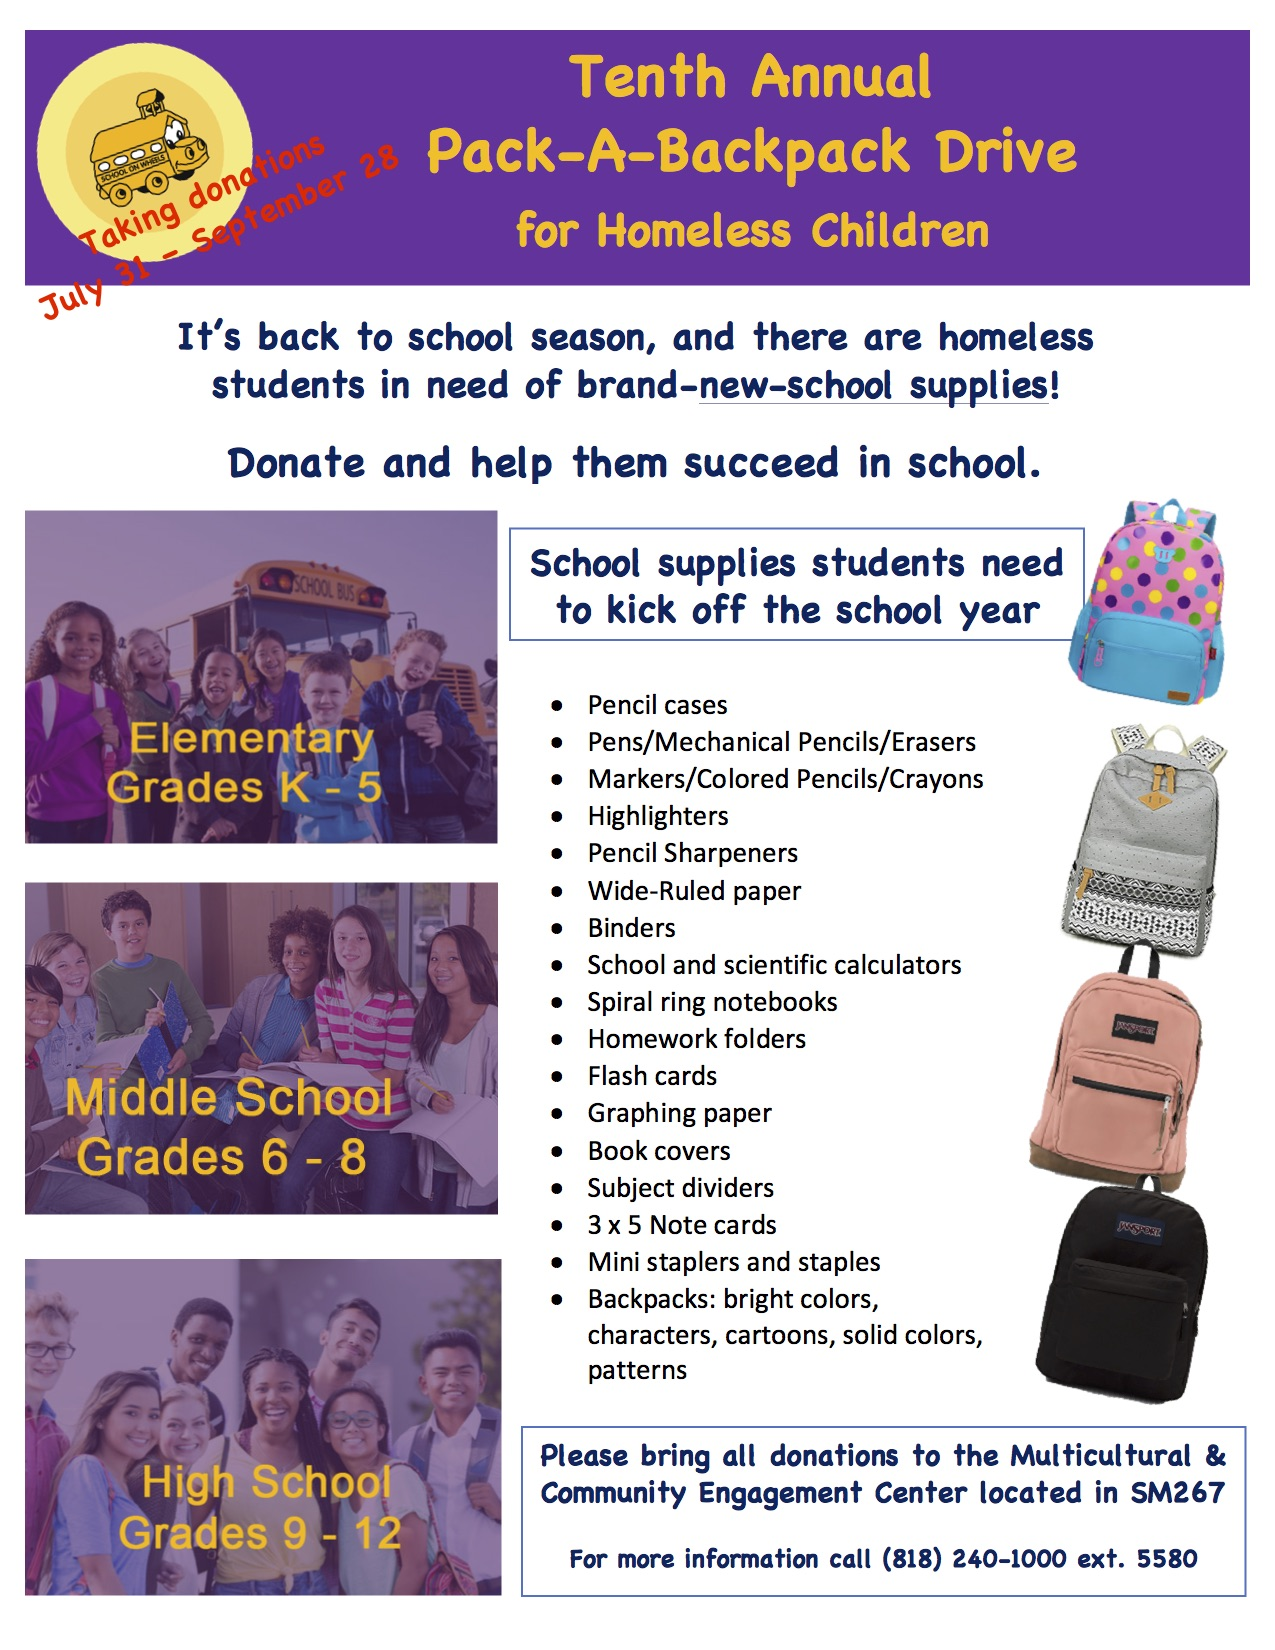 10th Annual Pack-A-Backpack Drive